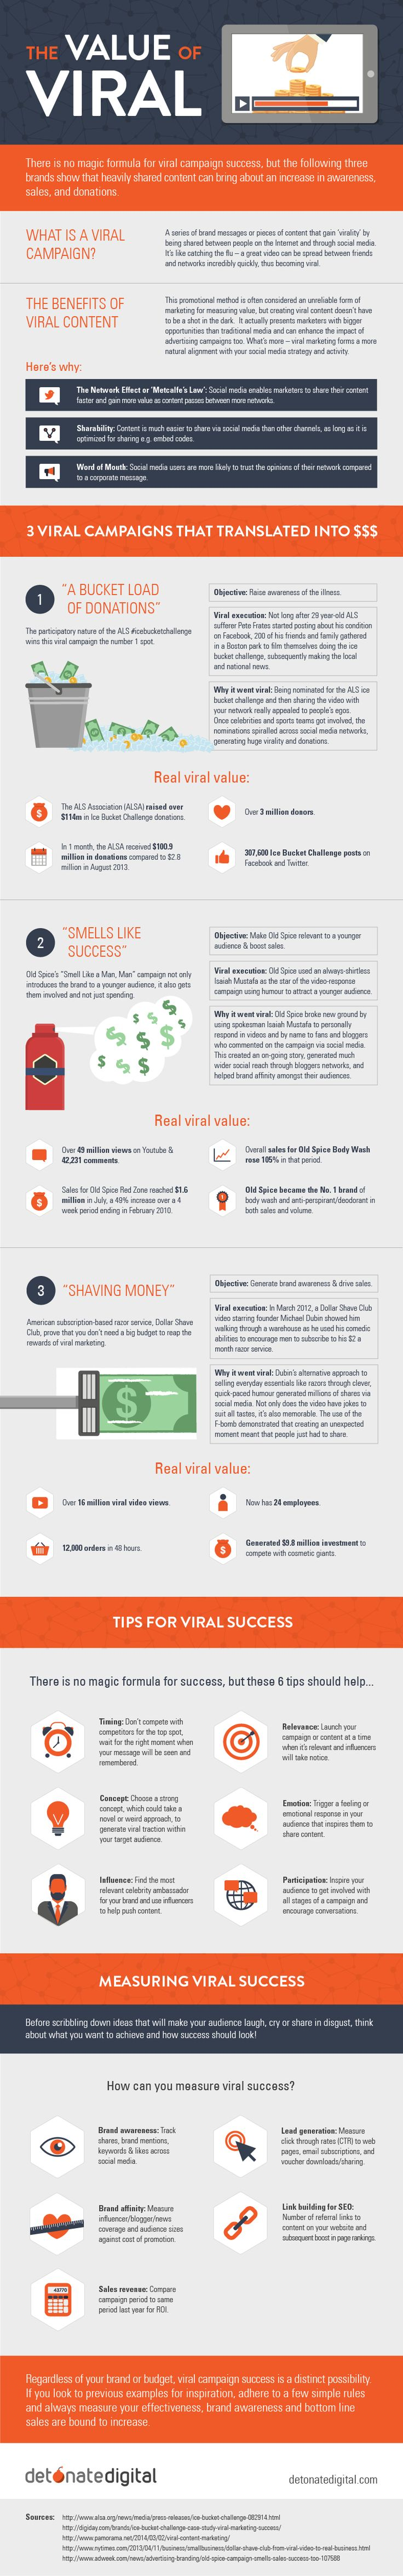 The Value of Viral Marketing #infographic #Marketing #ViralMarketing